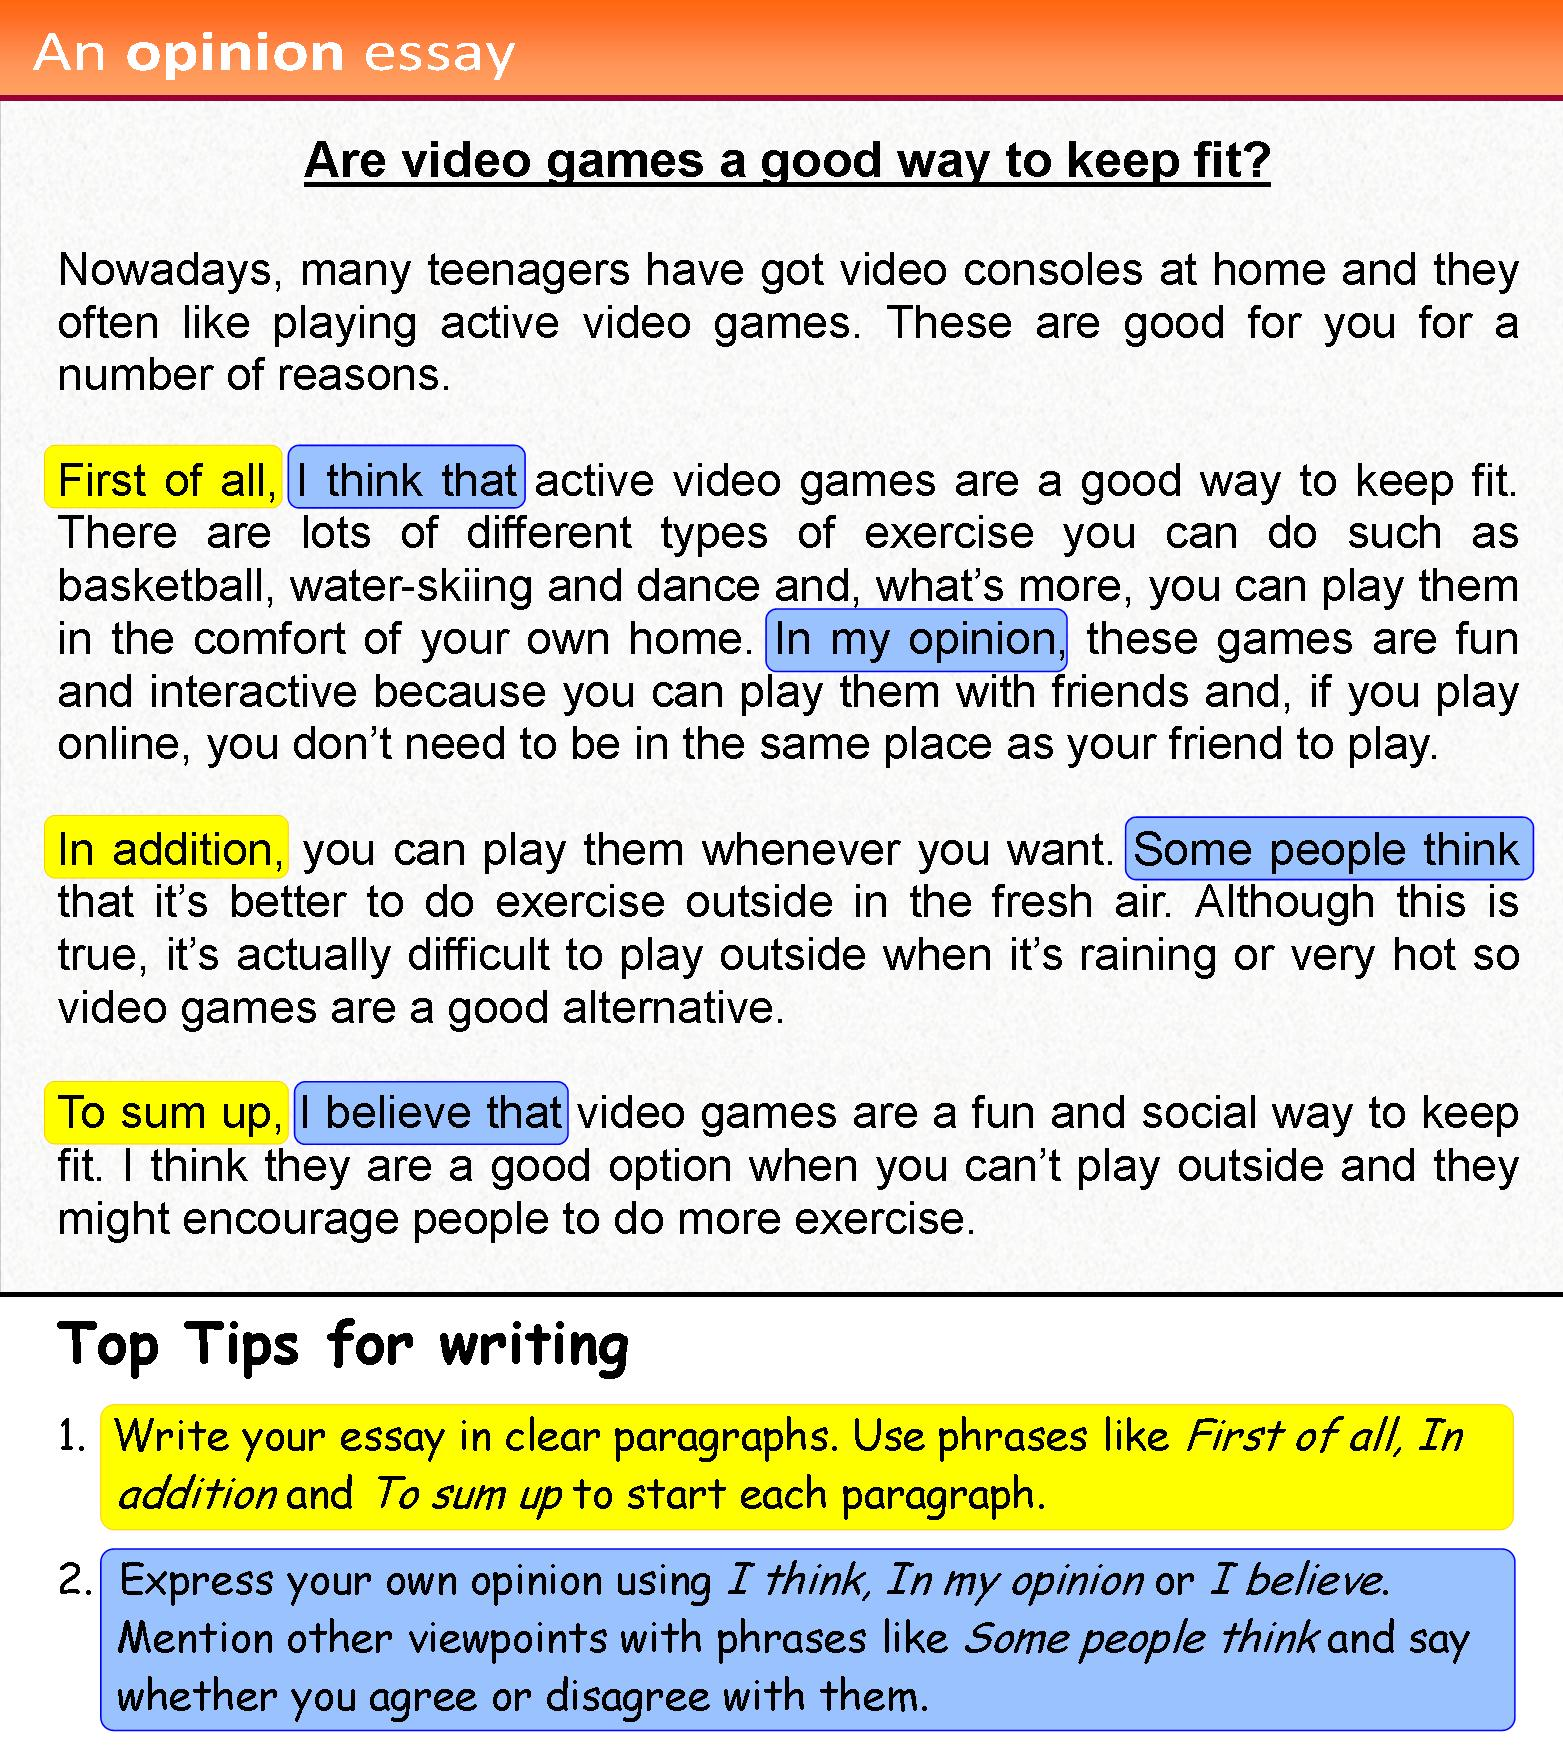 001 Writing An Opinion Essay 4 Shocking How To Write Argumentative 5th Grade Video Full